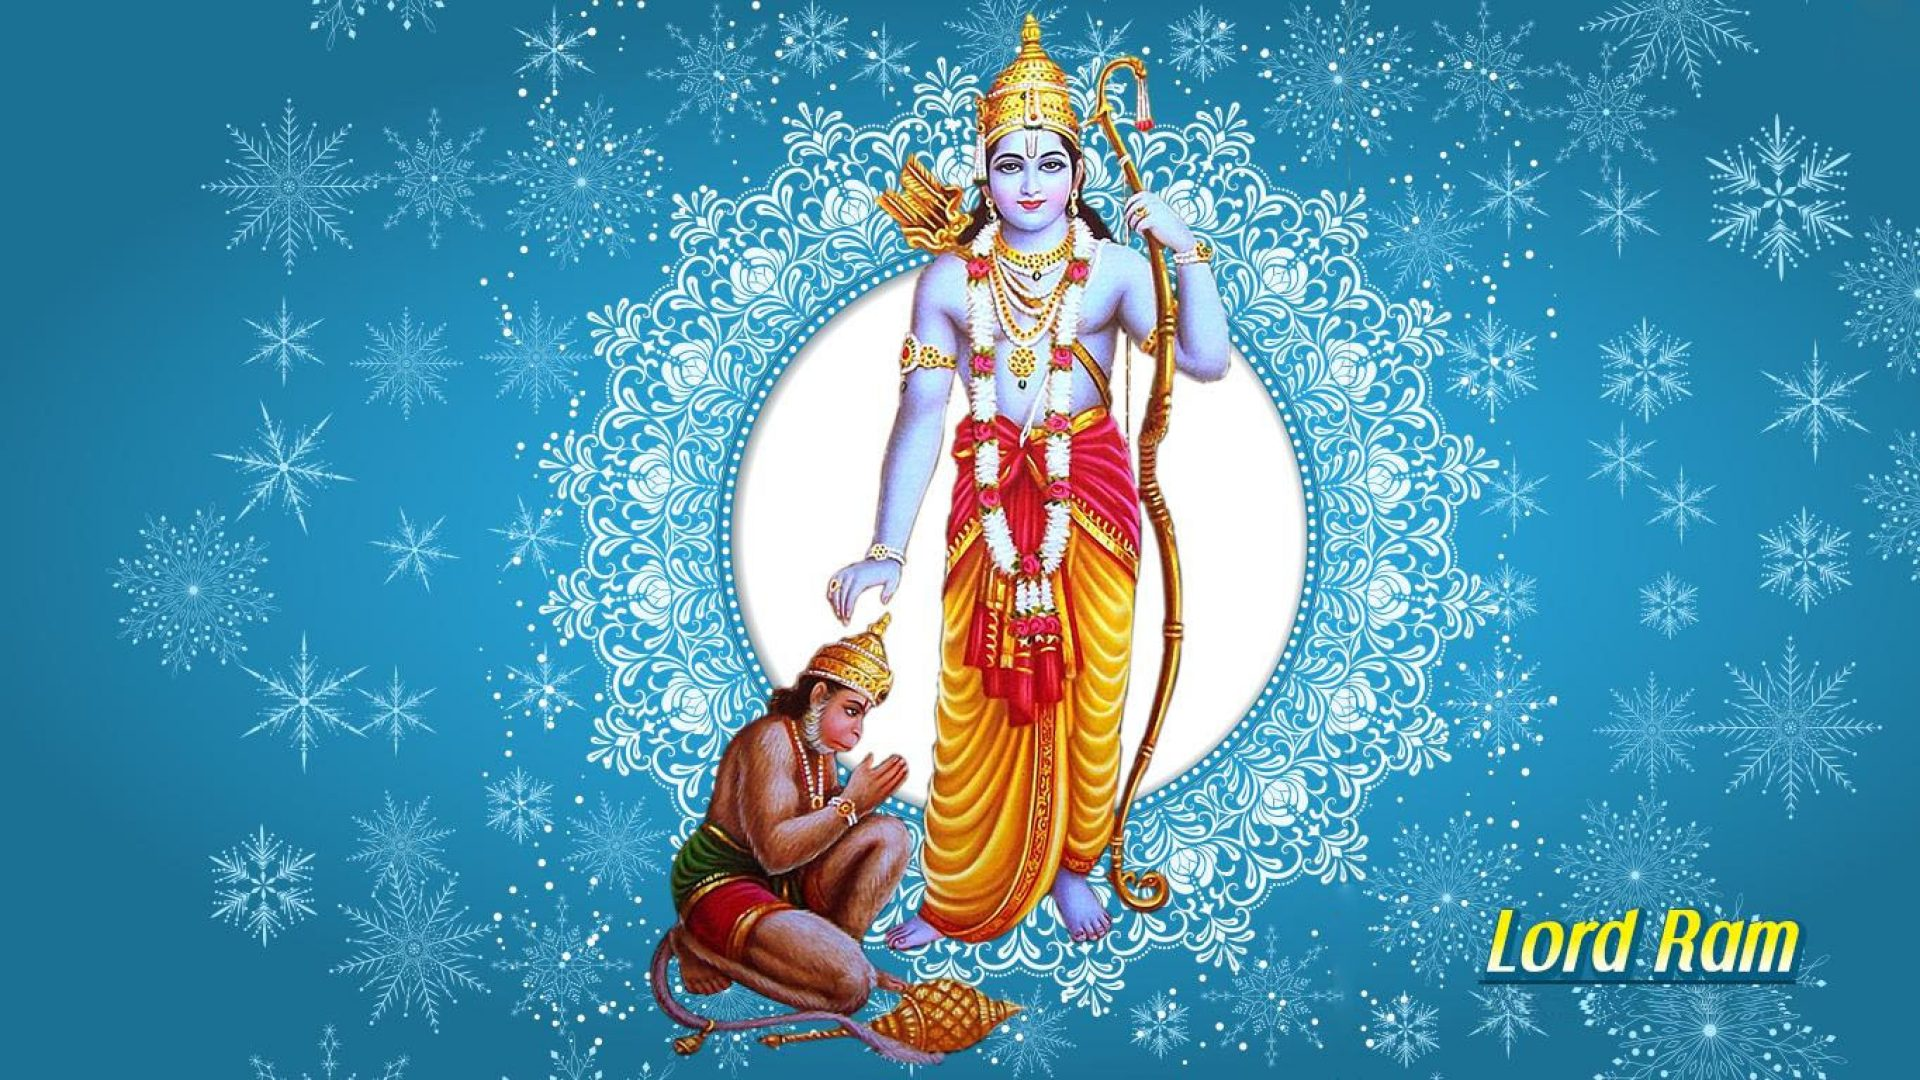 Lord Rama Hd Wallpapers For Mobile Hindu Gods And Goddesses